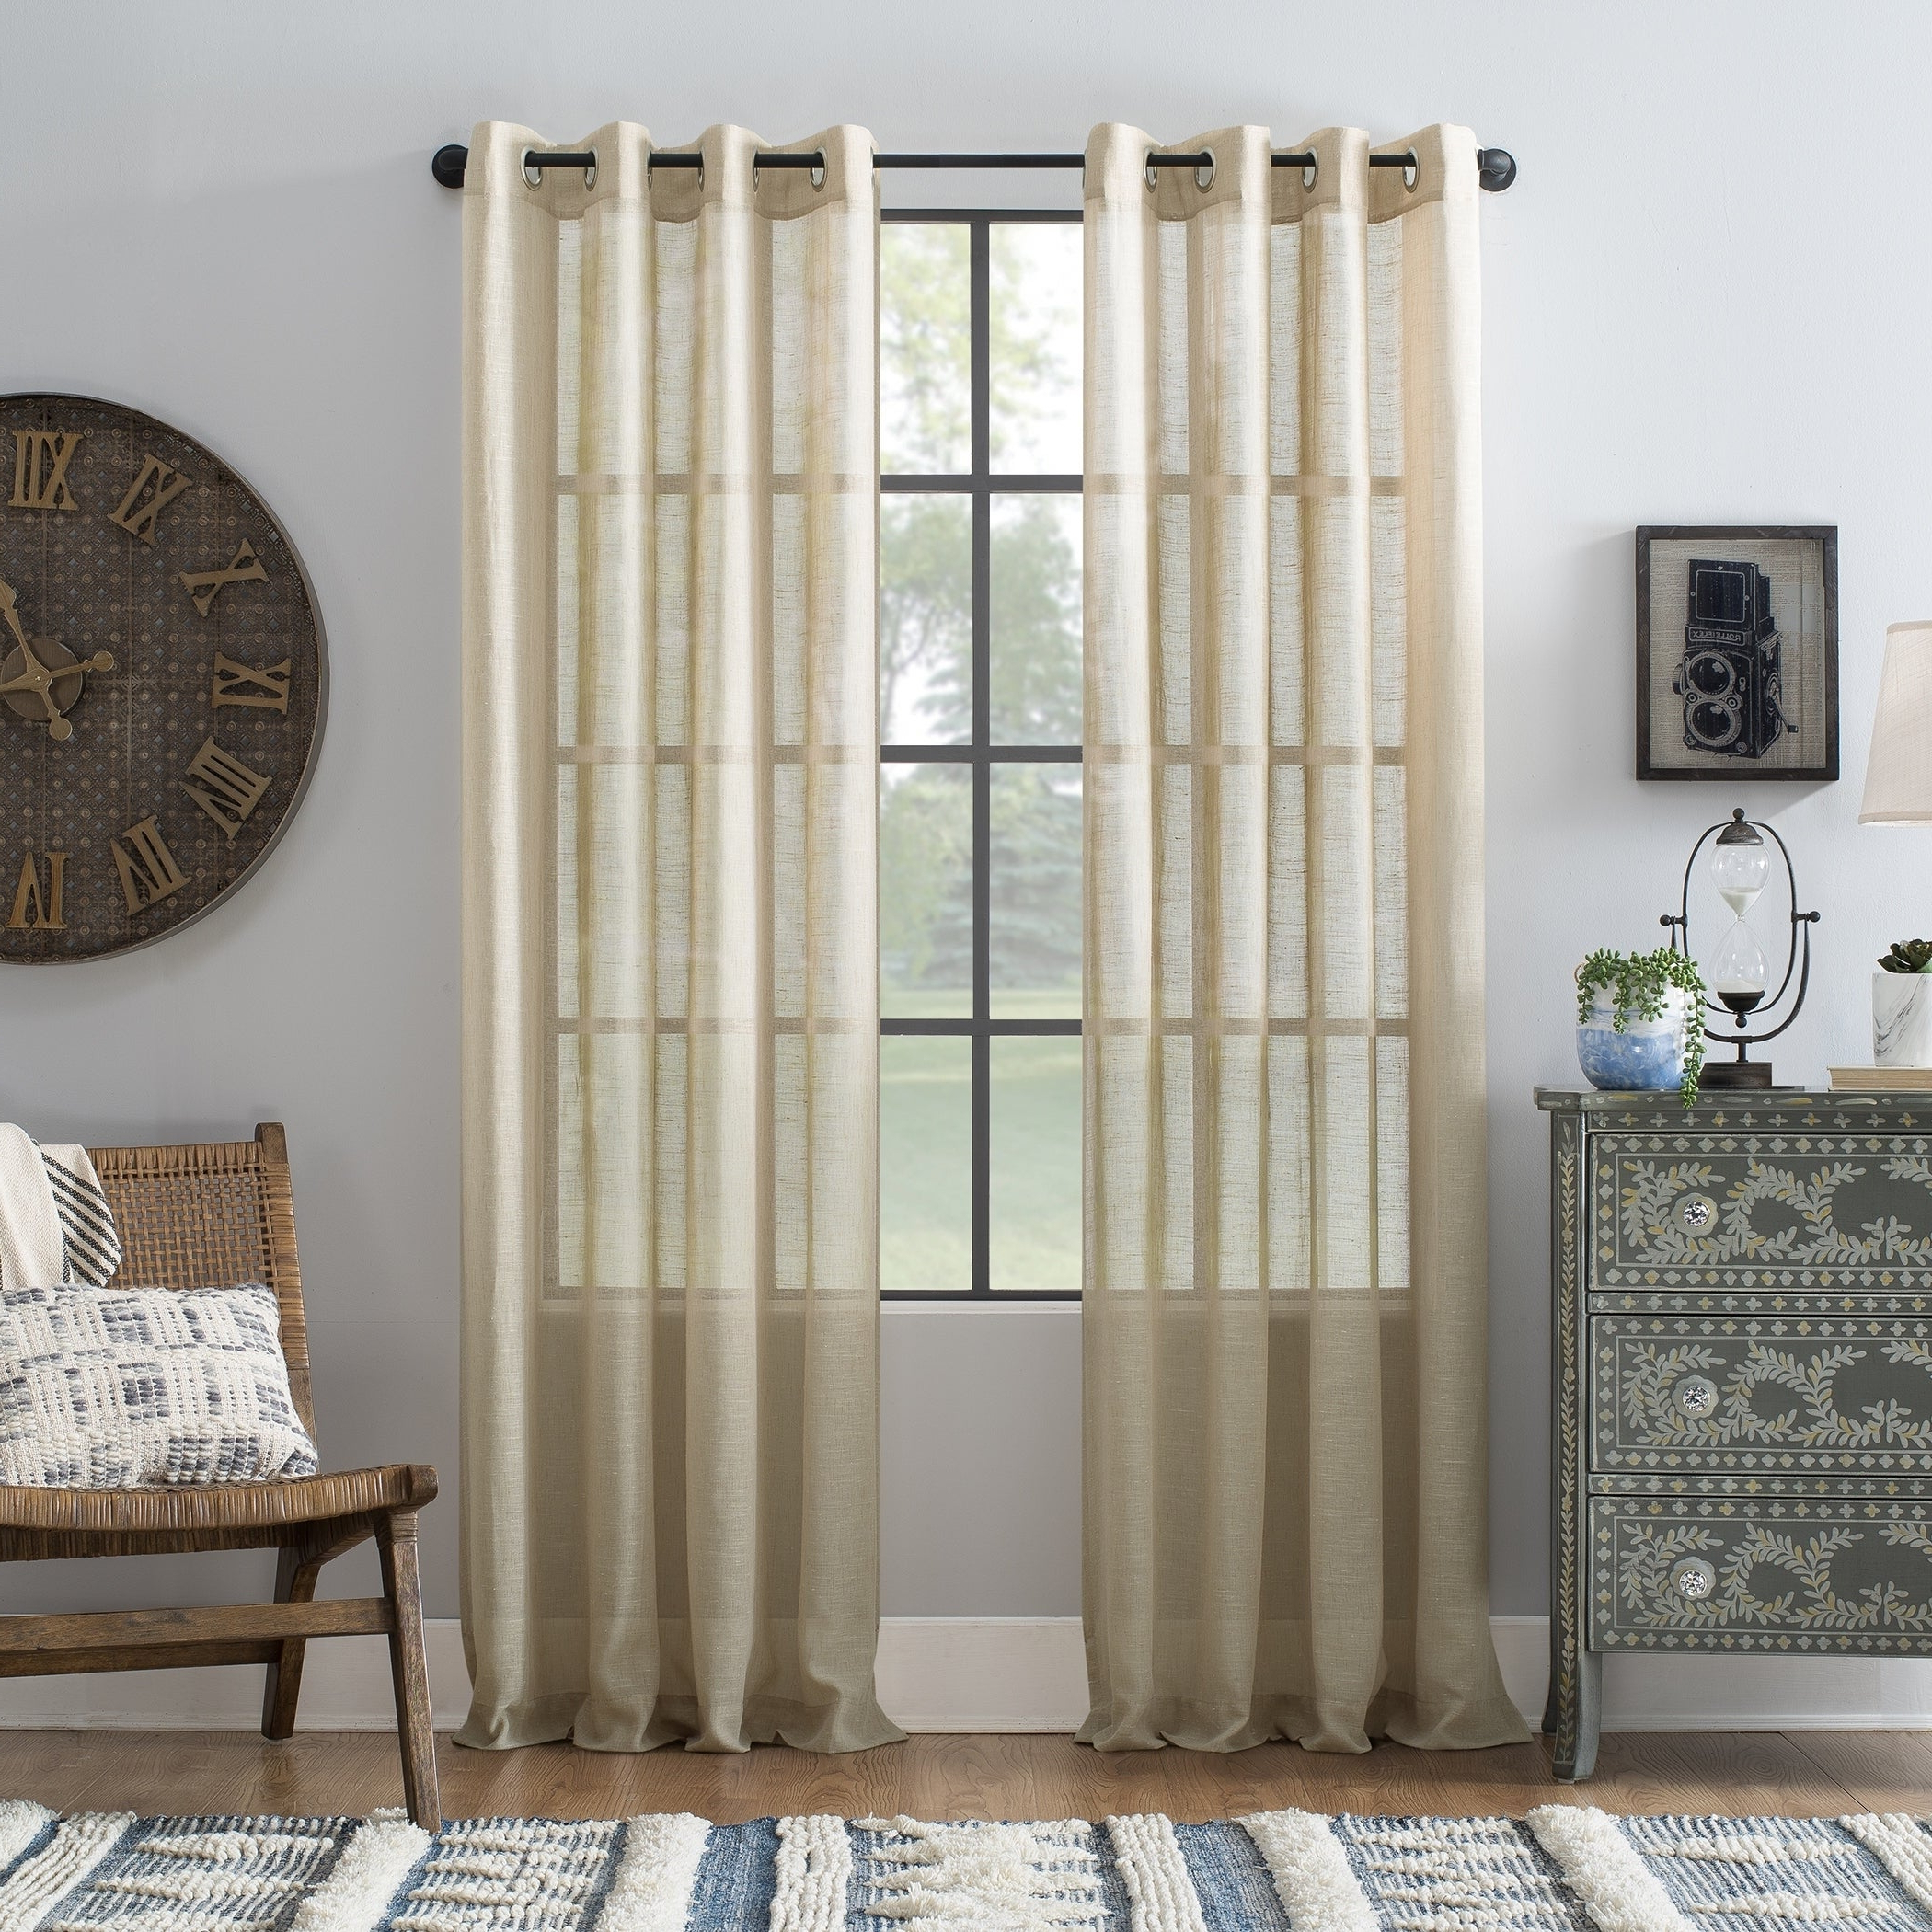 Archaeo Slub Textured Linen Blend Grommet Top Curtains Regarding Popular Archaeo Slub Textured Linen Blend Grommet Top Curtain (View 9 of 20)